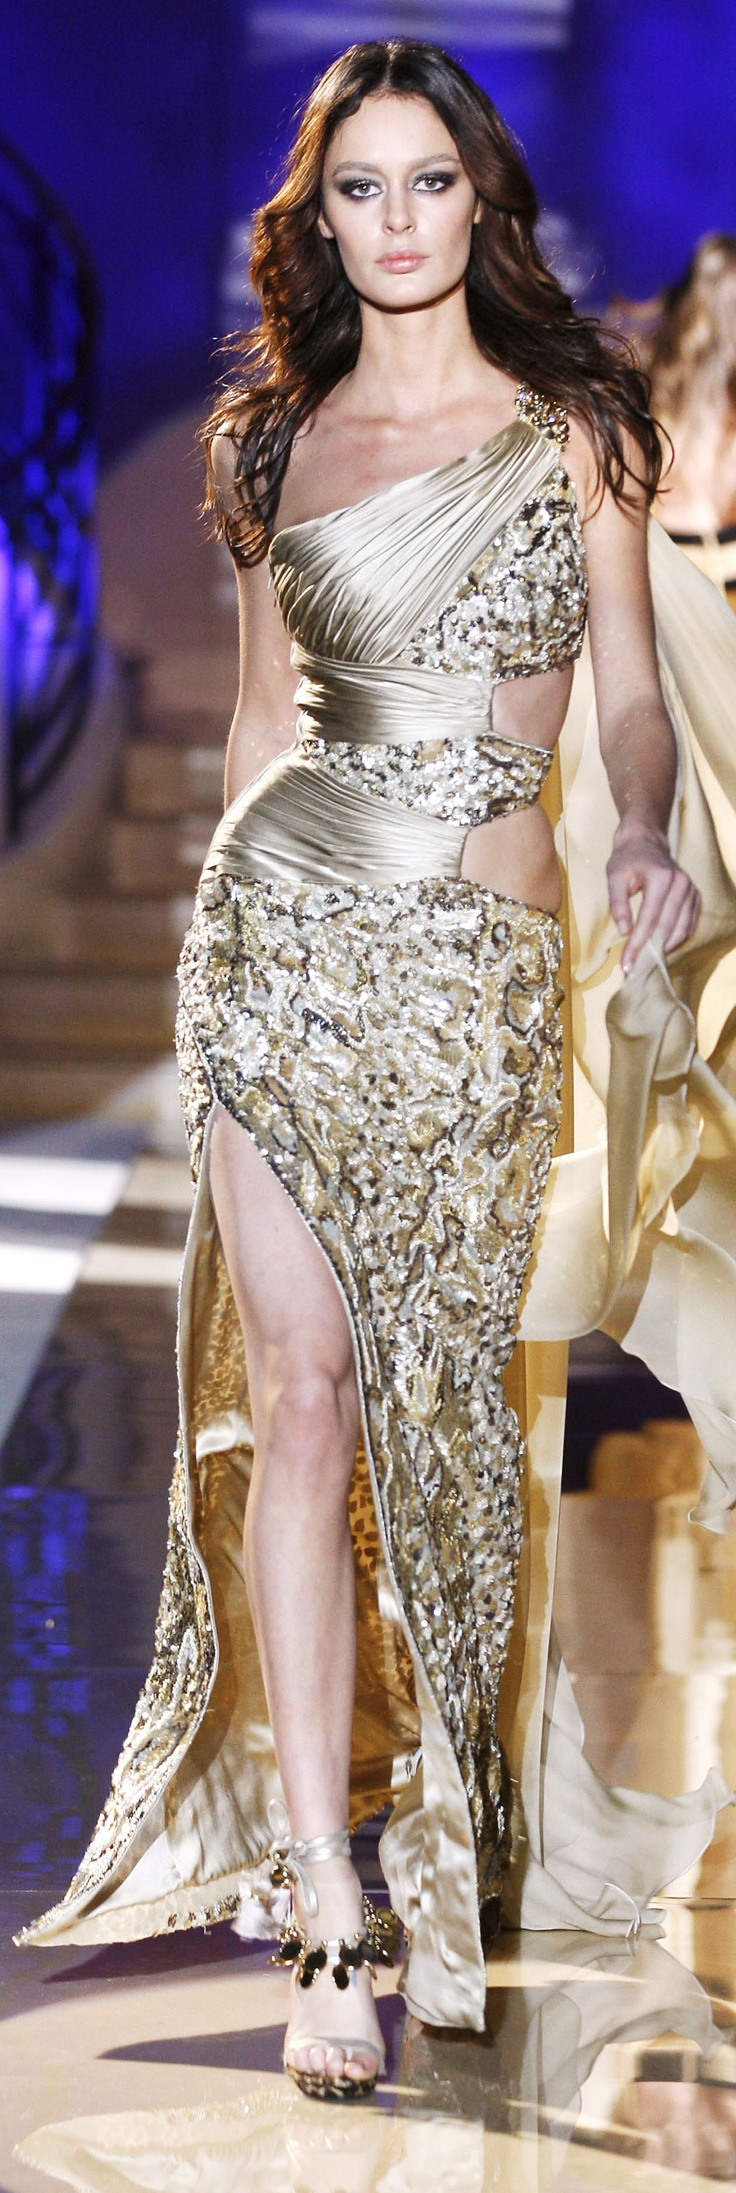 15 best formal summer 2013 images on pinterest india for Haute couture price range